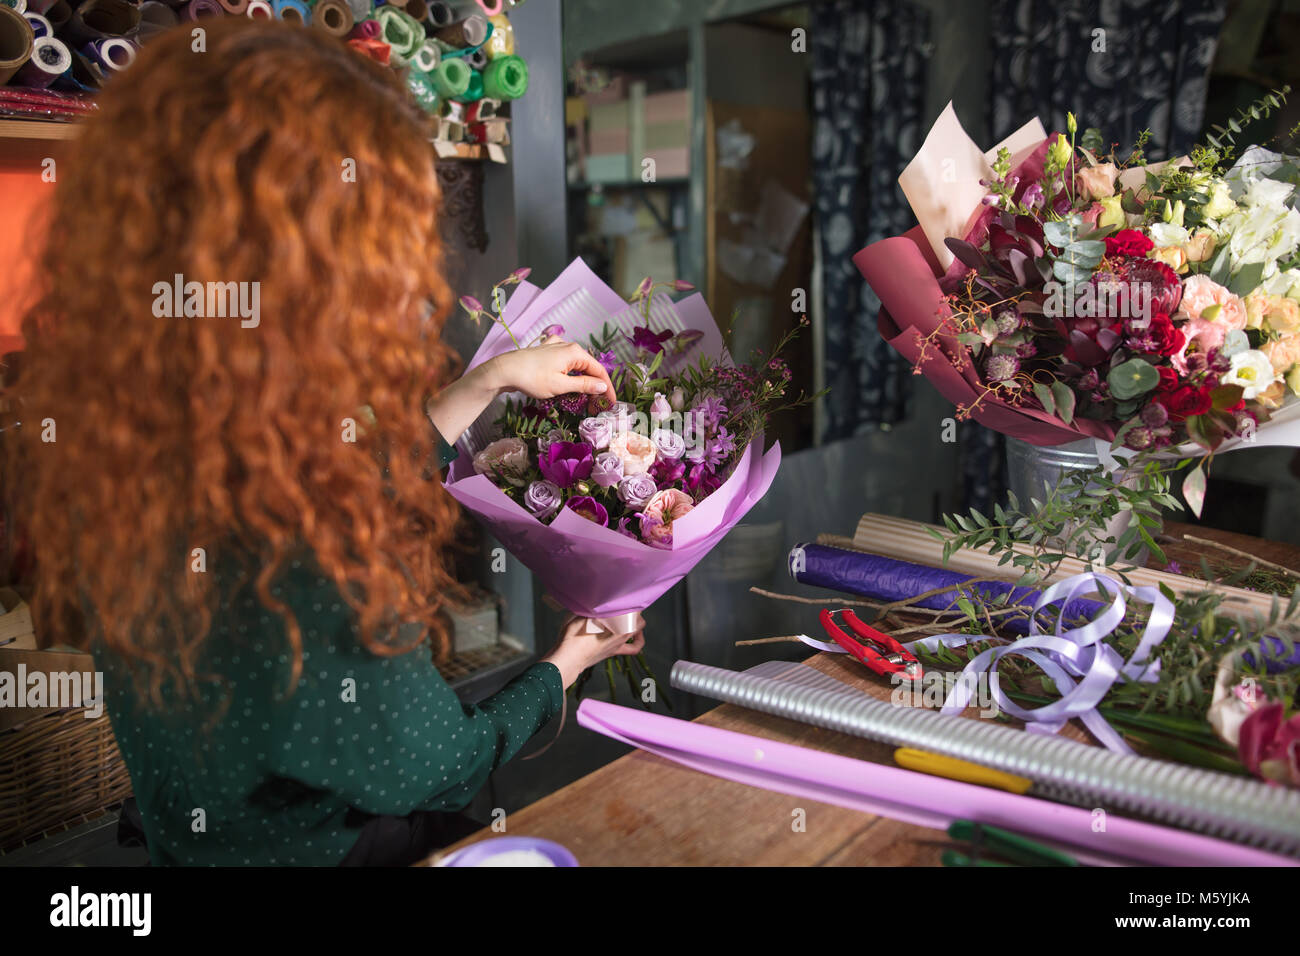 woman near the table with wrappers for flowers - Stock Image